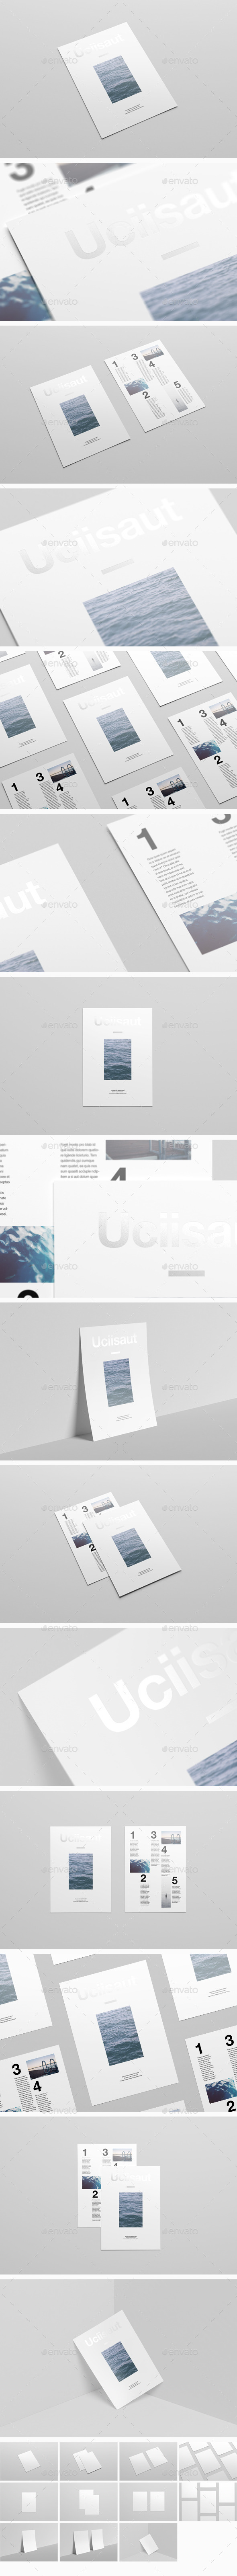 GraphicRiver A4 Flyer Mock-Up 11454795